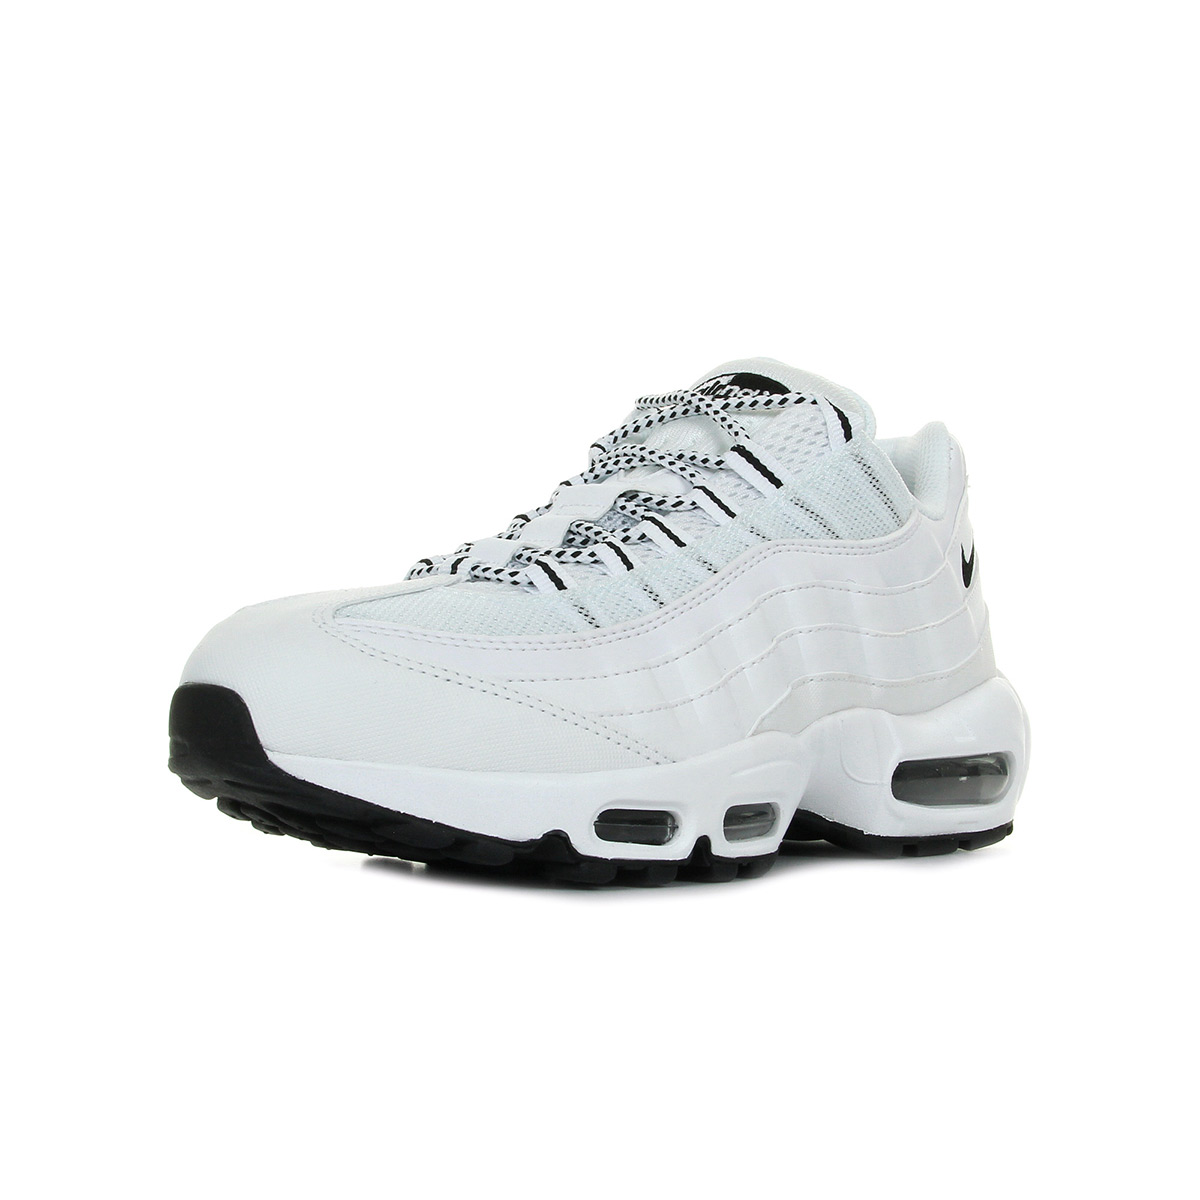 Chaussures Baskets Nike Homme Blanc Air Max 95 Taille Blanc Homme Blanche Cuir f51f5d